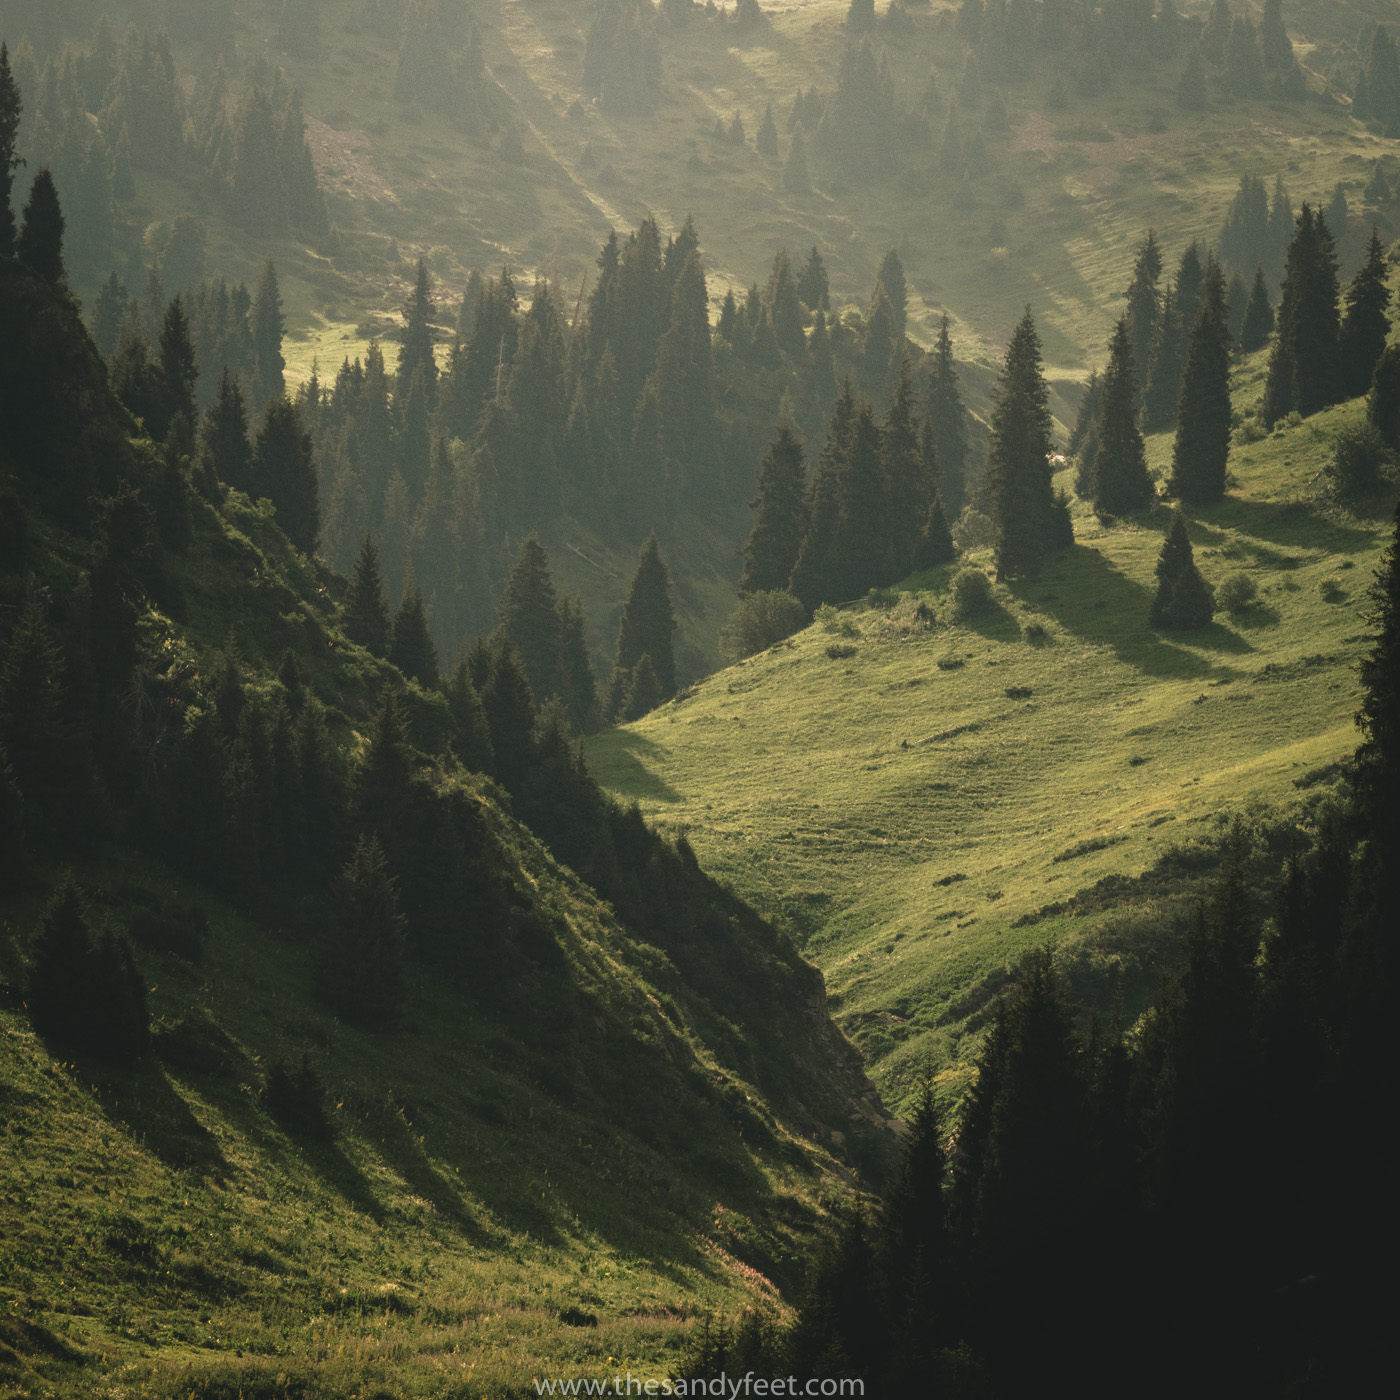 The Four Peaks Trail: Our Favourite Hiking Trail Near Almaty